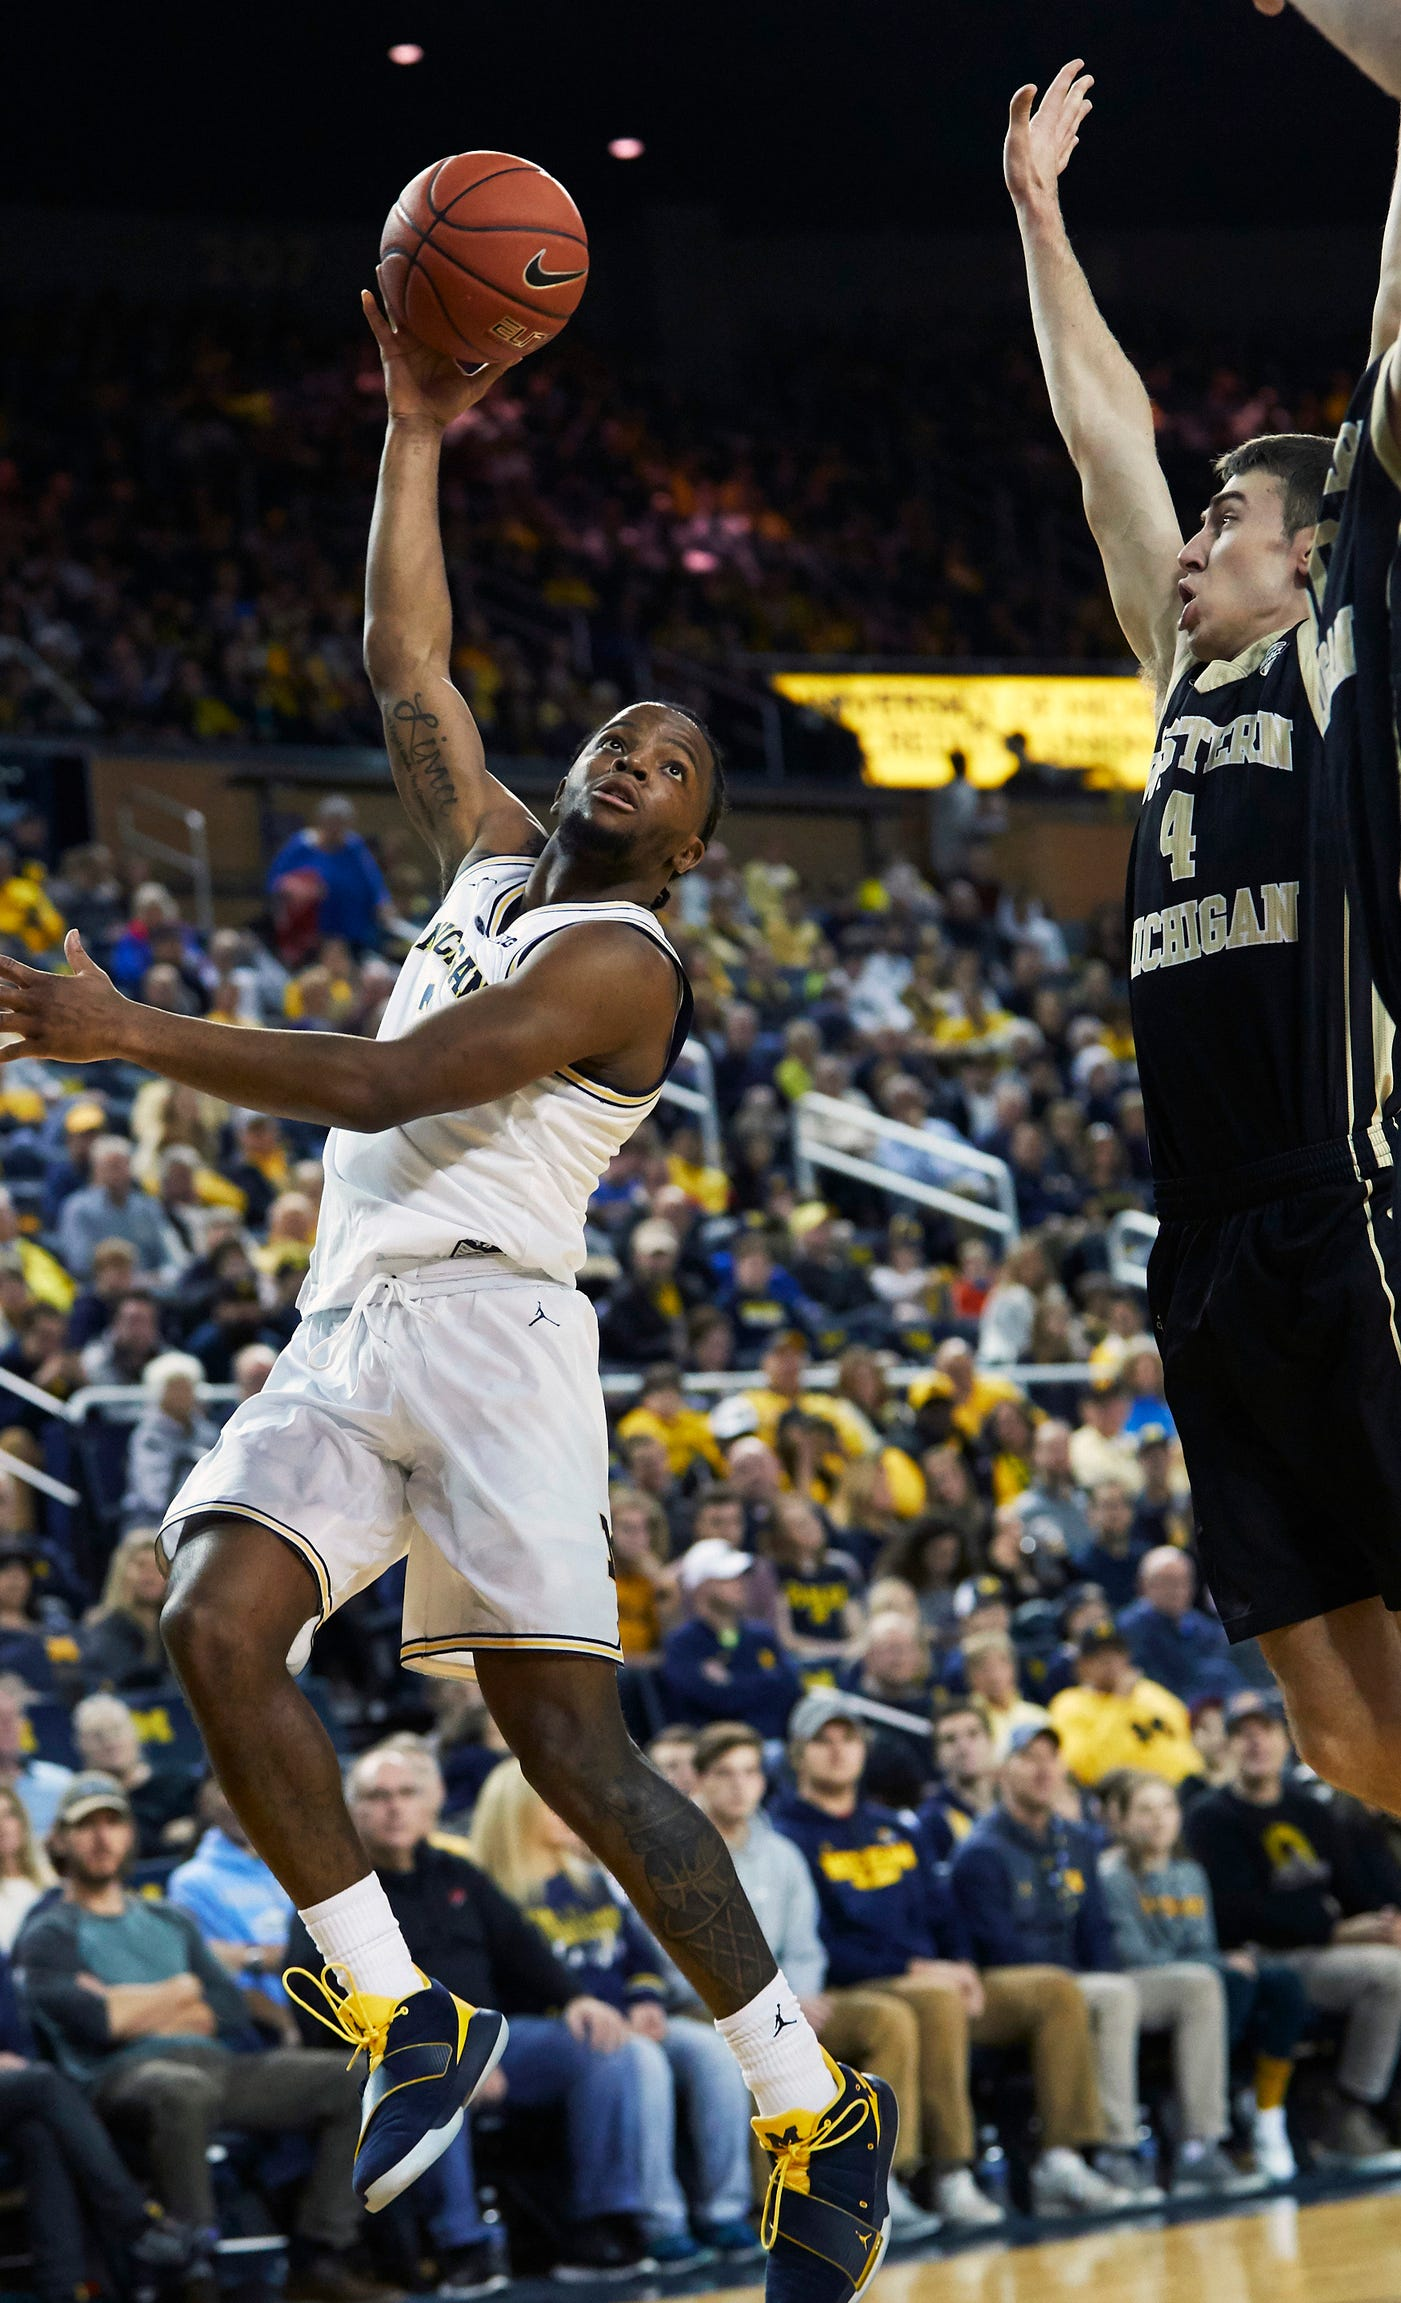 Michigan guard Zavier Simpson shoots on Western Michigan guard Jared Printy in the first half on Saturday, Dec. 15, 2018, at Crisler Center.